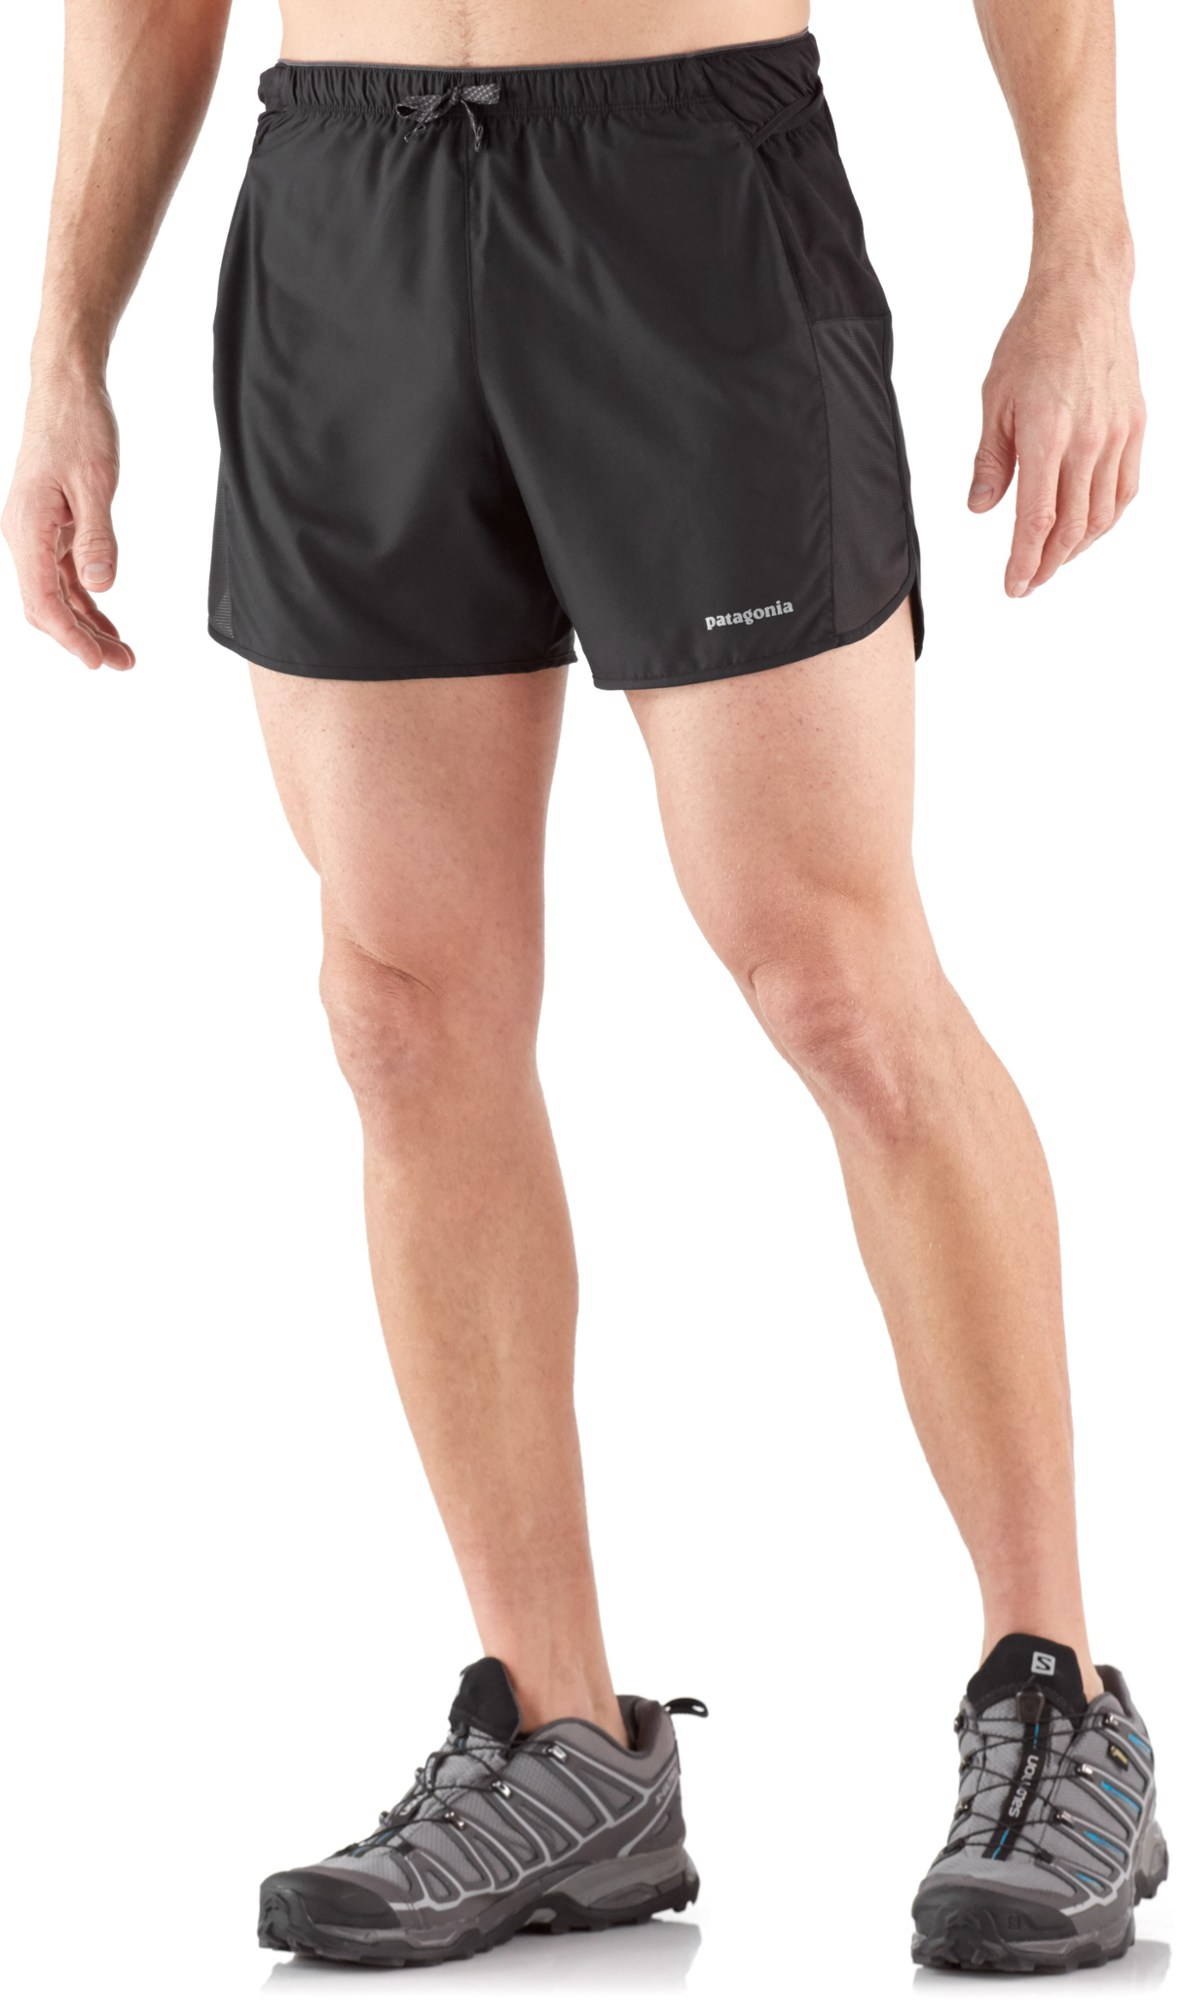 Patagonia Strider Pro Shorts - Men's 5